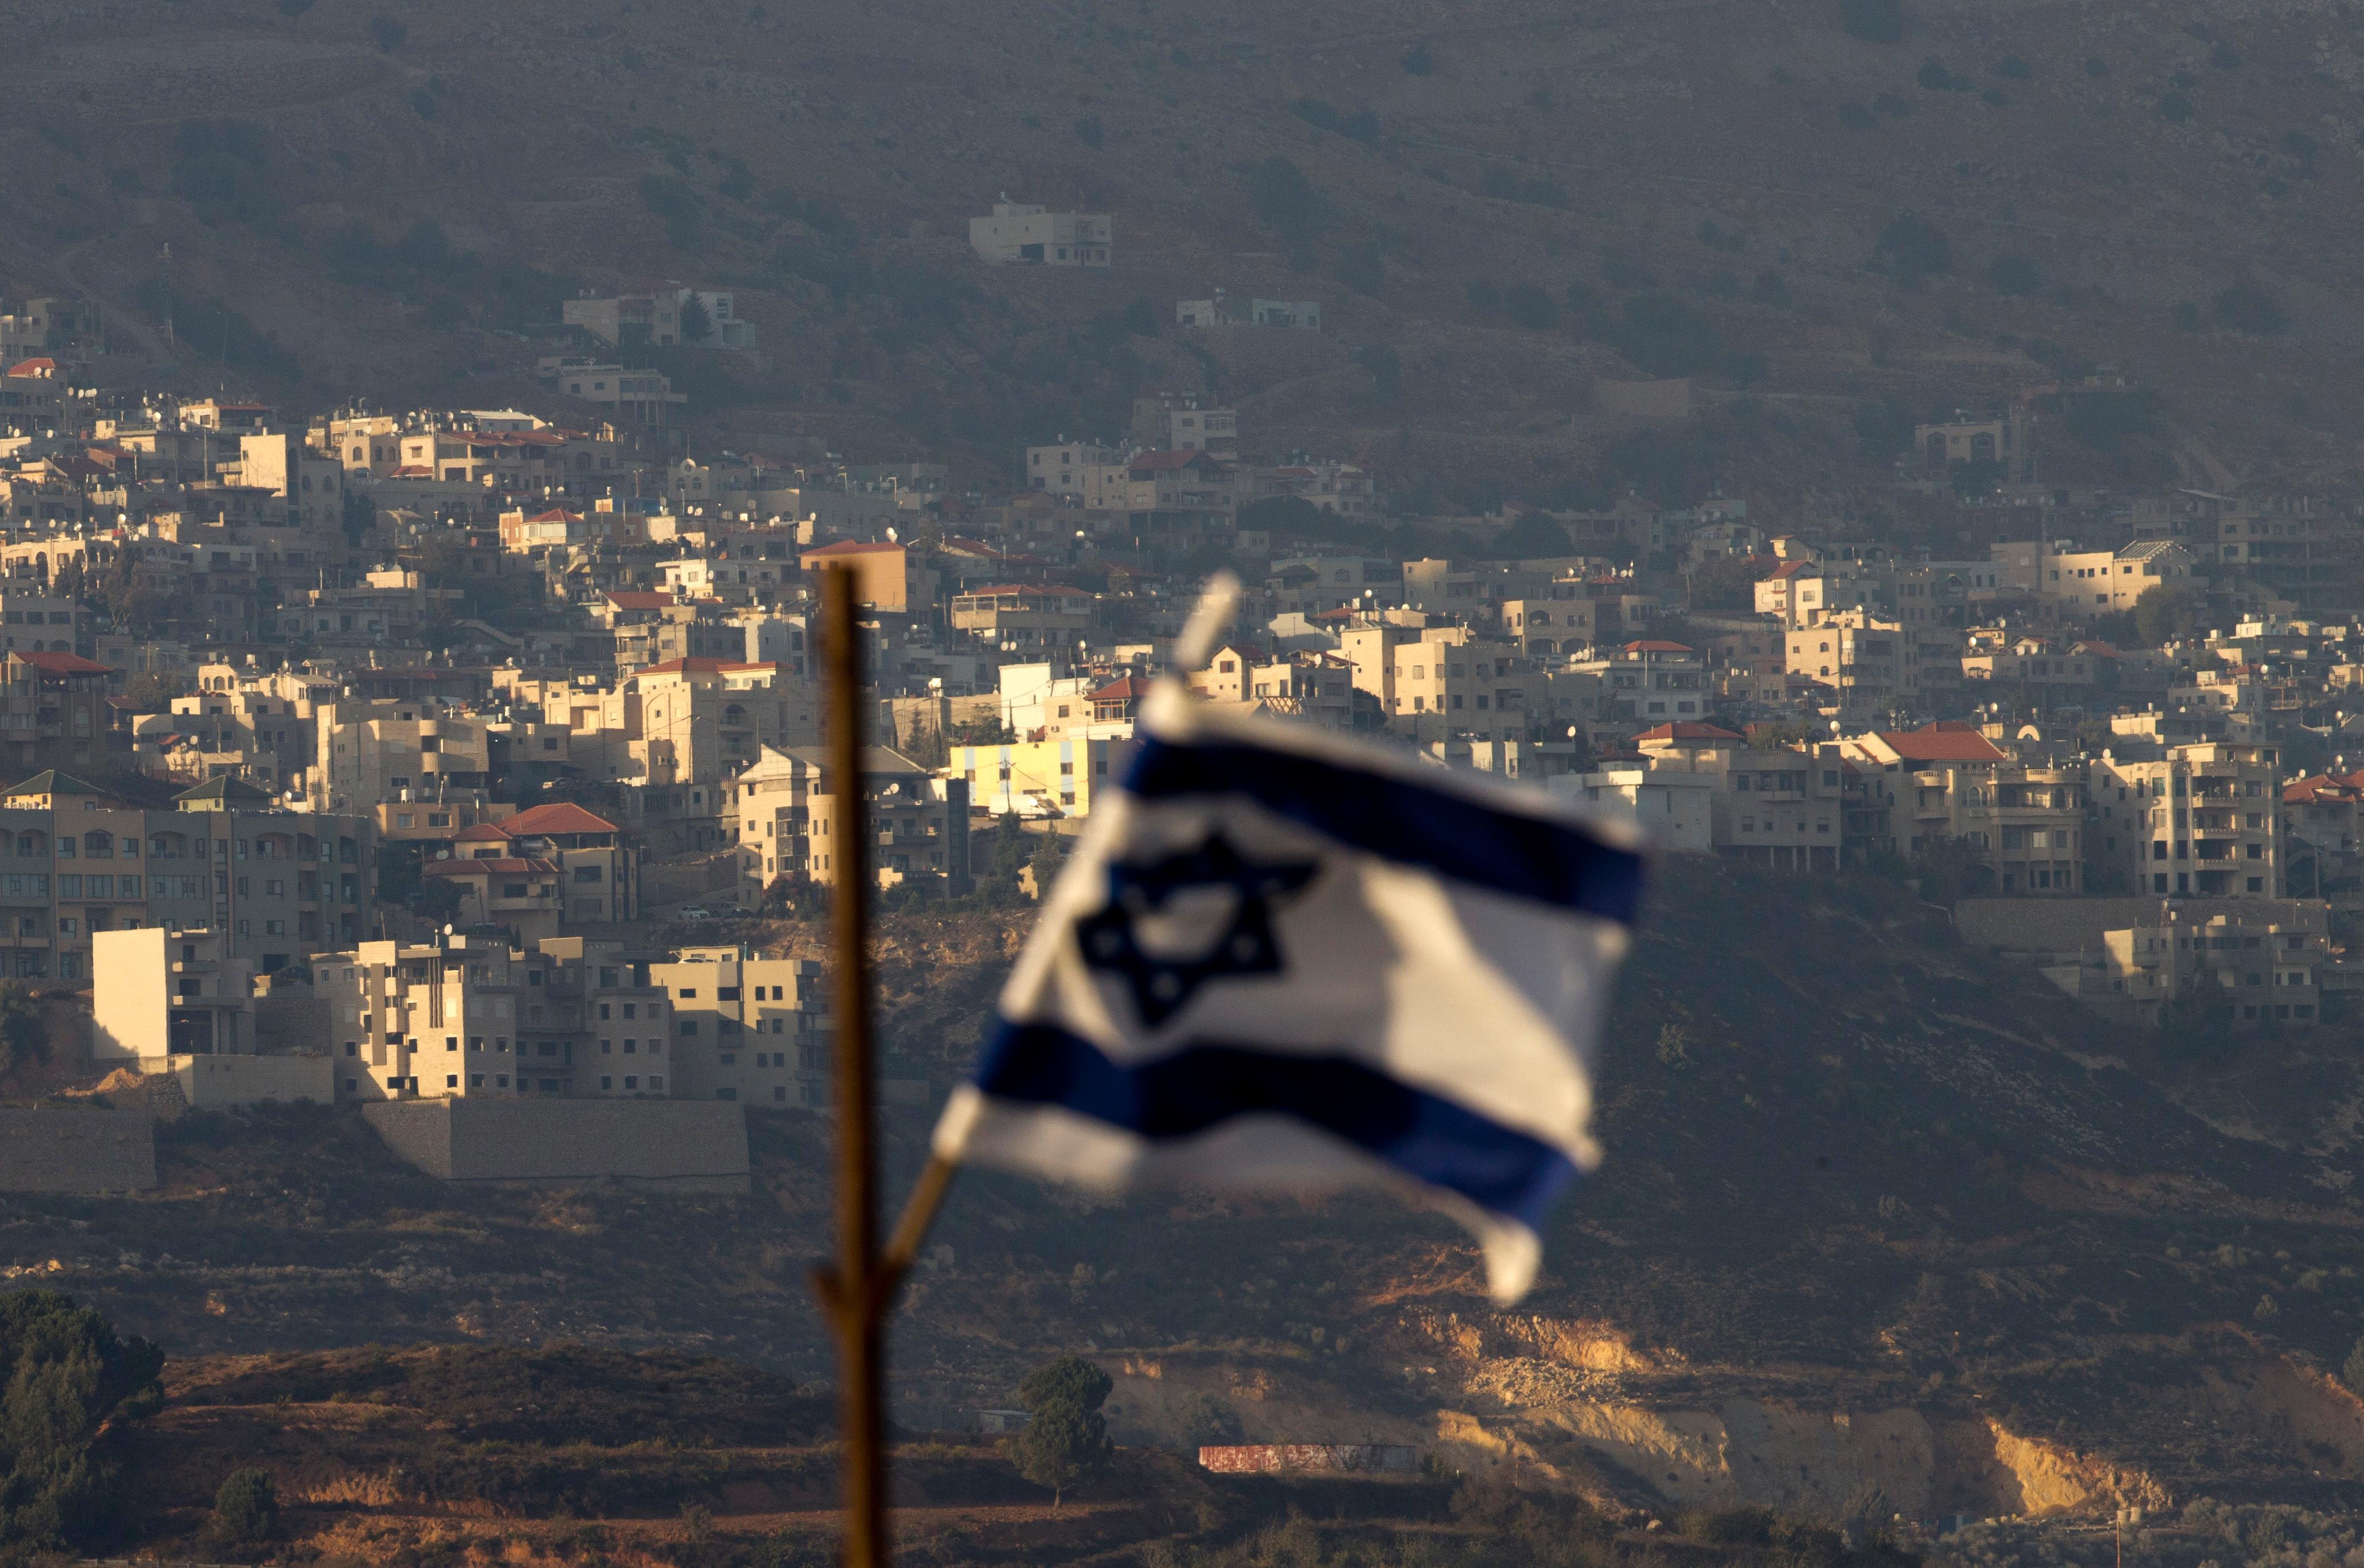 FILE - In this file photo dated Thursday, Oct. 11, 2018, an Israeli flag in front of the village of Majdal Shams in the Israeli-controlled Golan Heights.(AP Photo/Ariel Schalit, FILE)